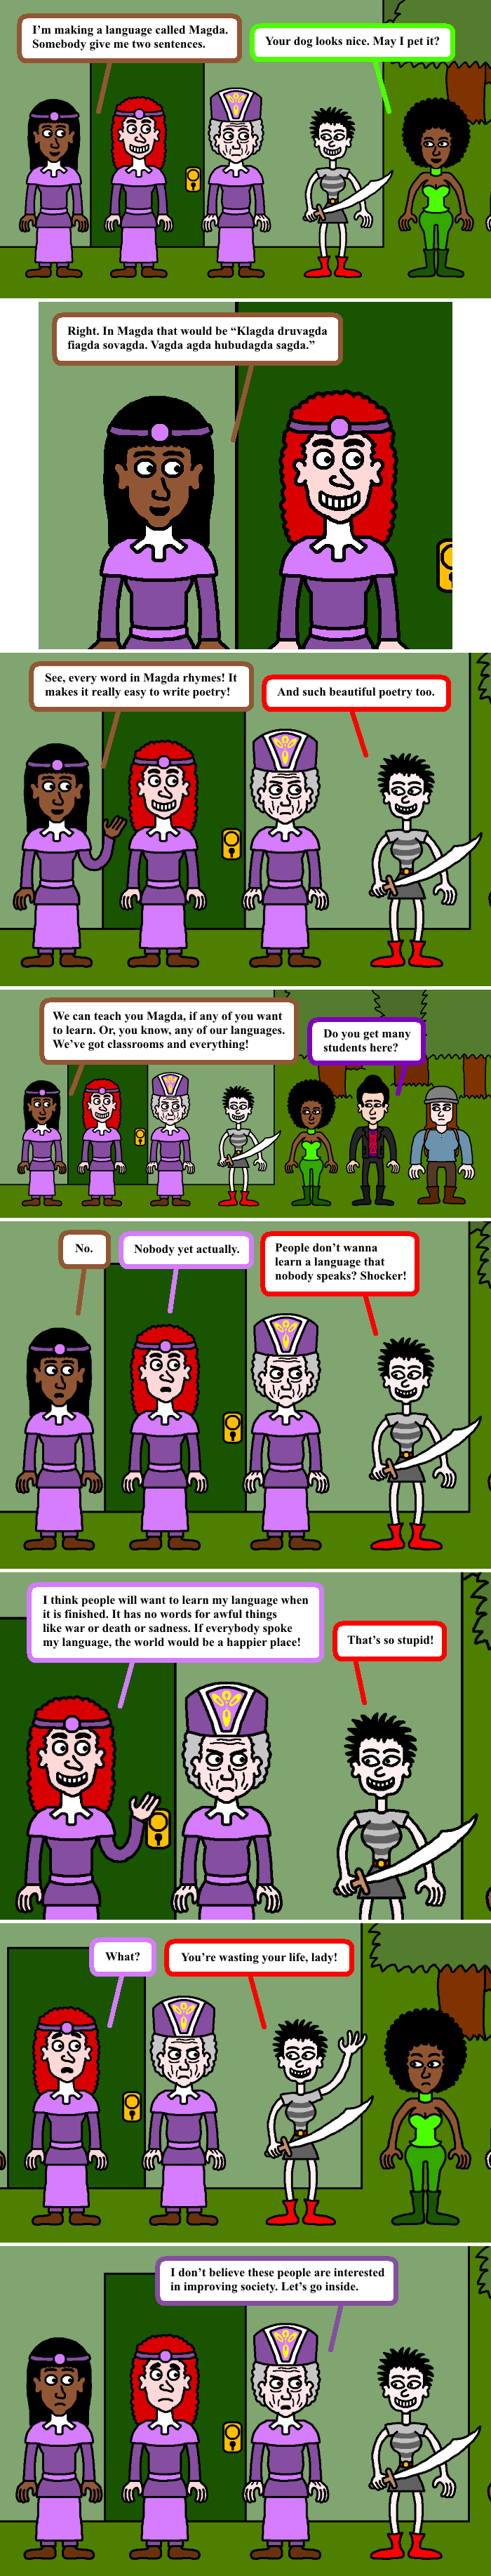 The Scepter of Death 8